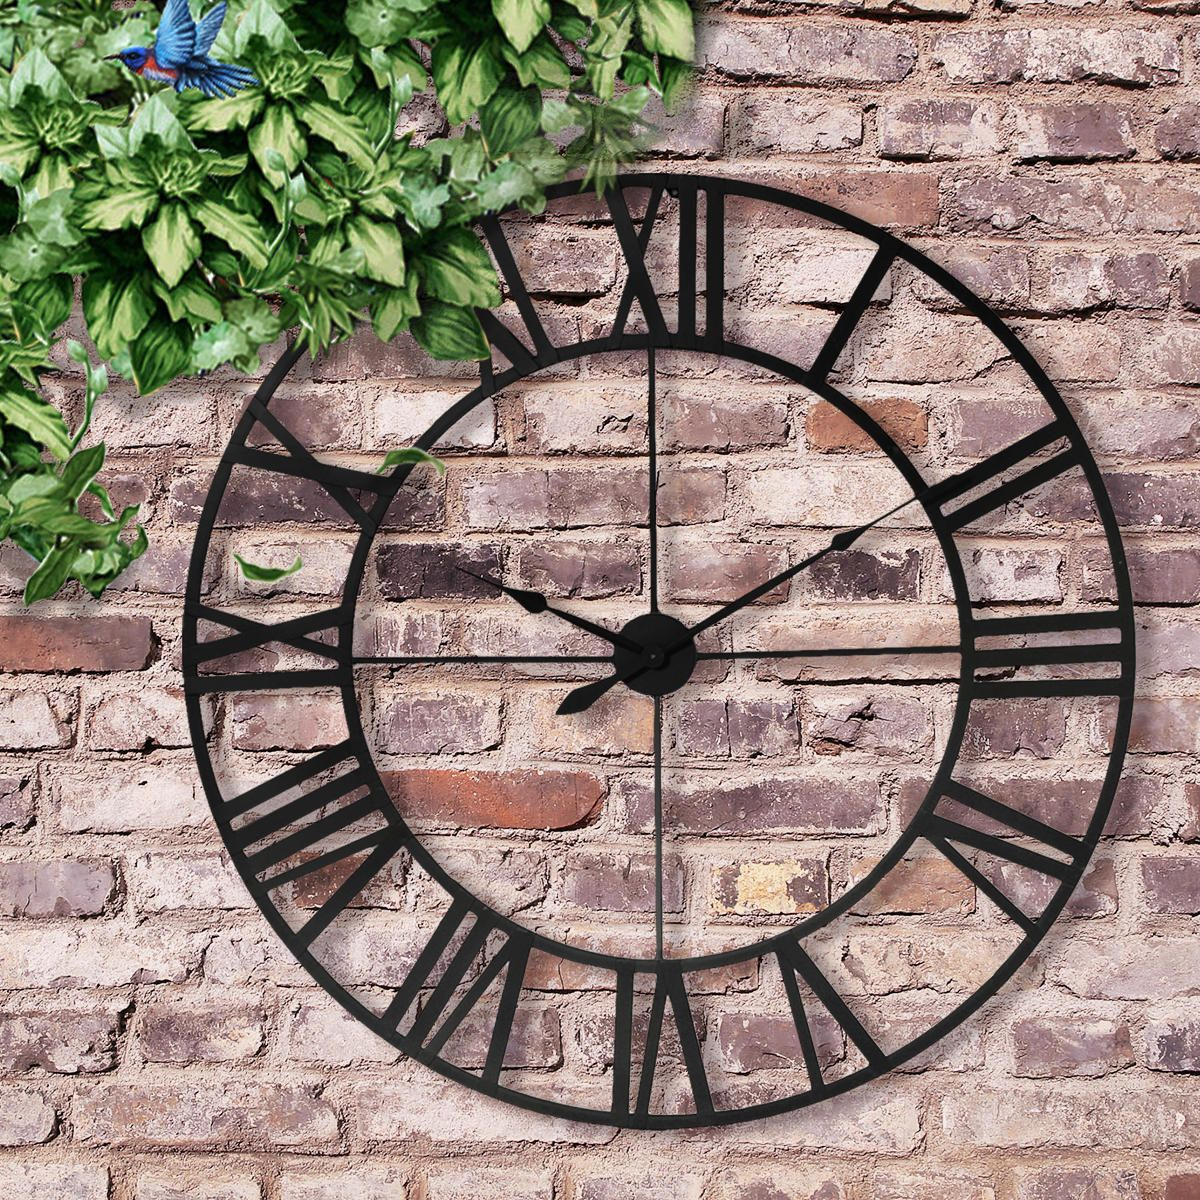 80cm Large Outdoor Garden Wall Clock Roman Numerals Giant Open Face Metal Smart Home From Consumer Electronics On Banggood Com Outdoor Wall Clocks Roman Numeral Wall Clock Roman Numeral Clock